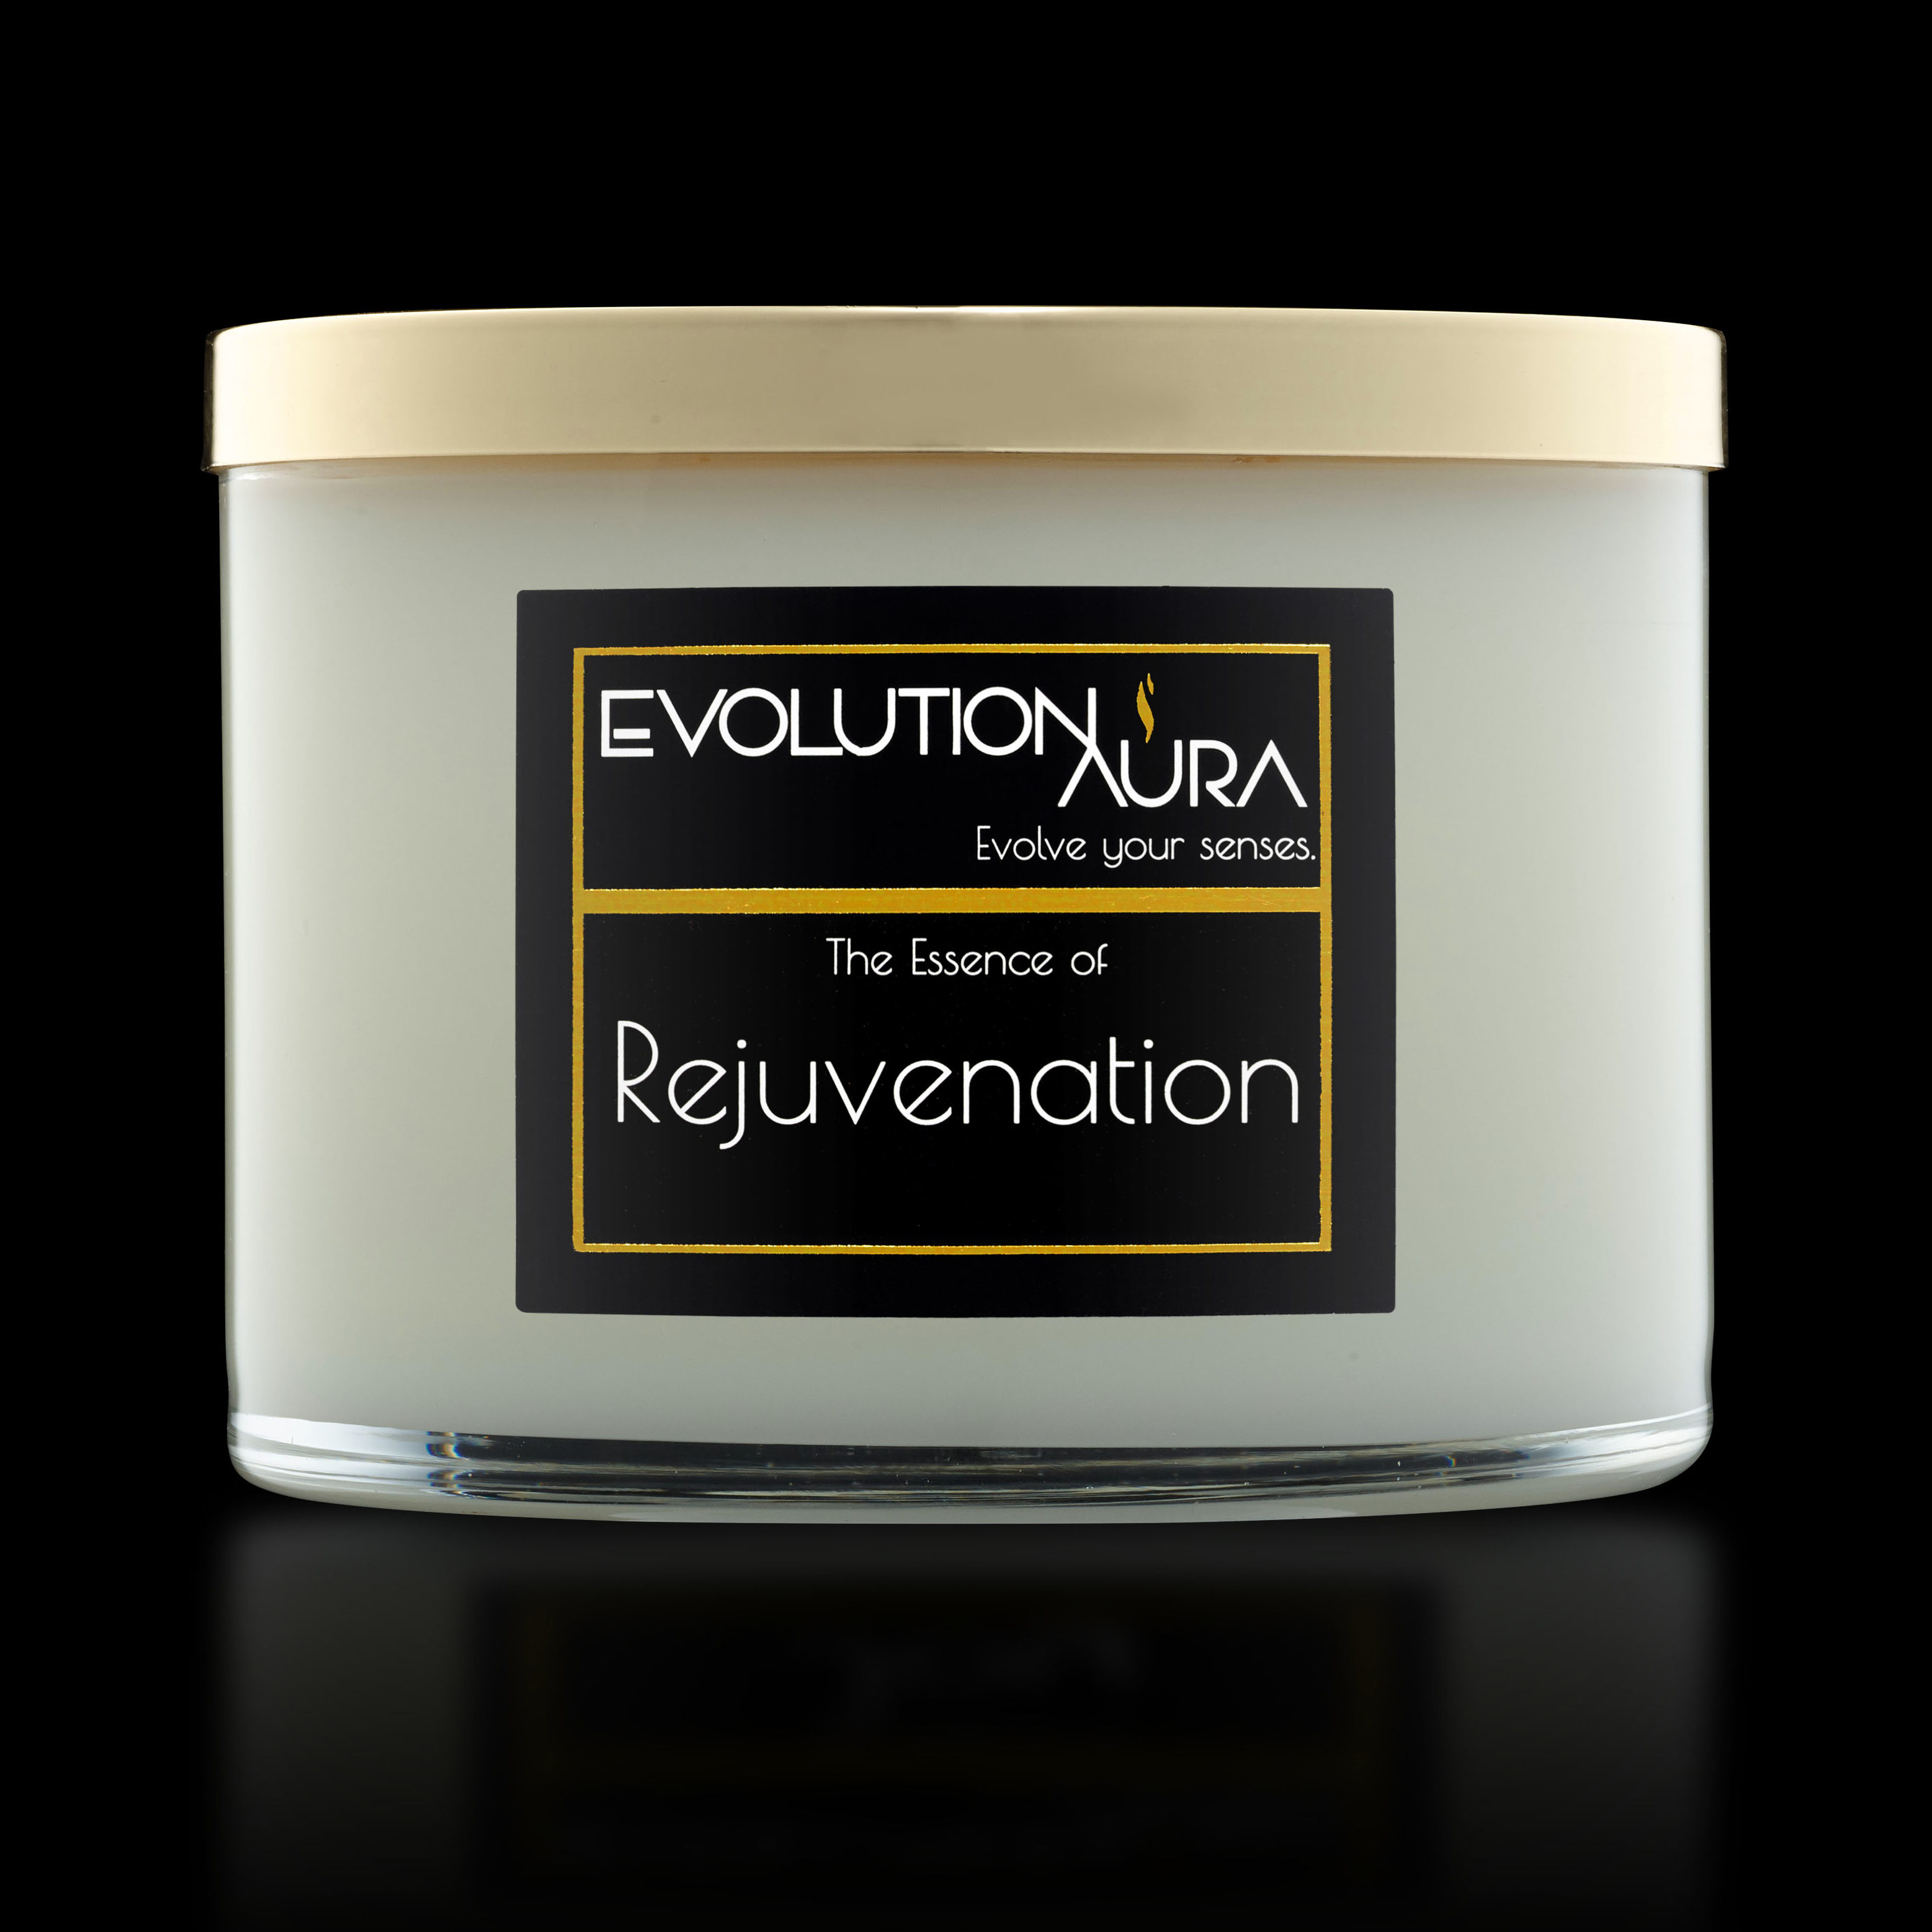 Rejuvenation by Evolution Aura